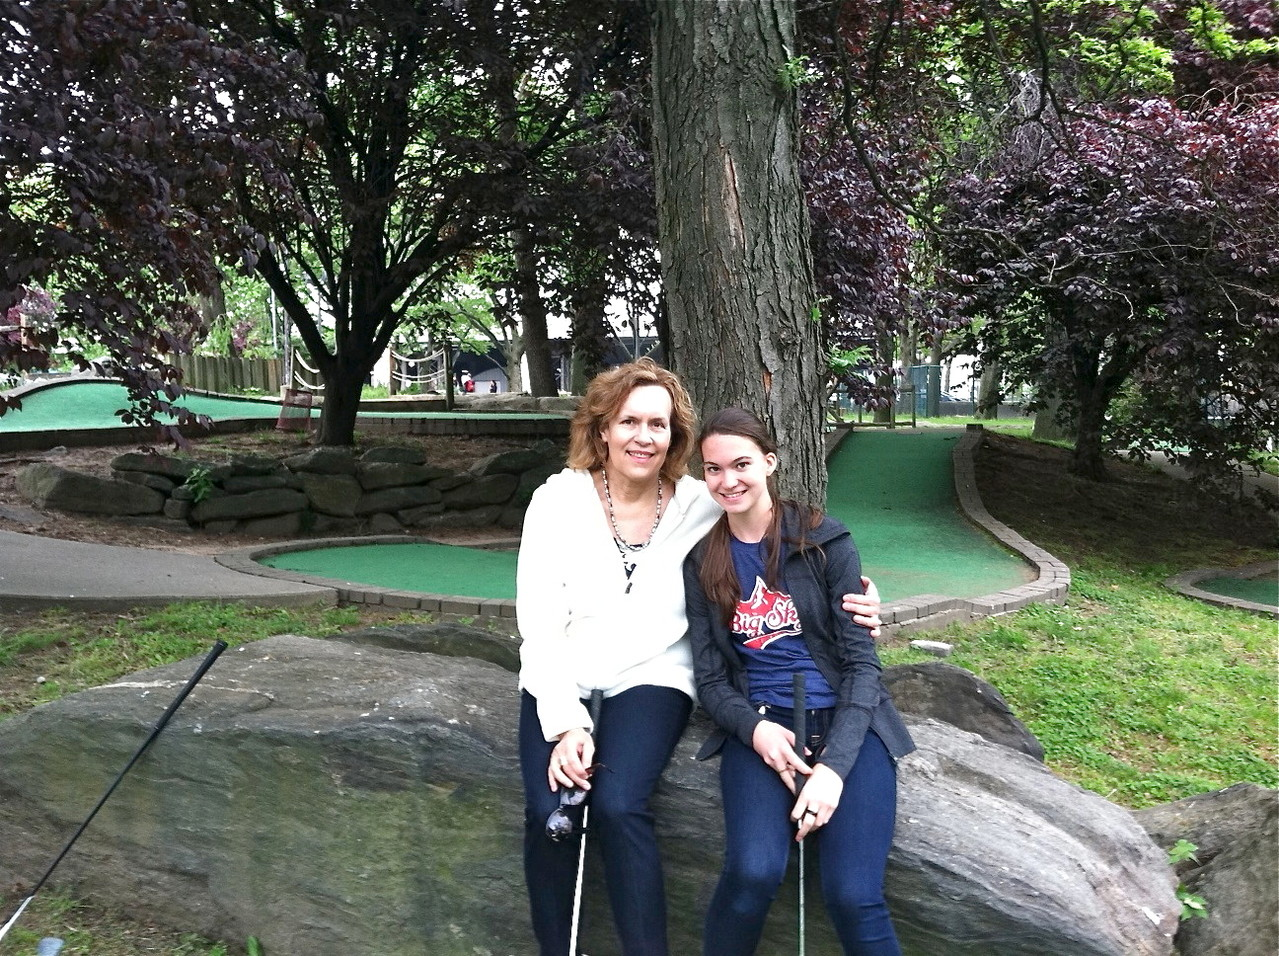 Lorraine & Ellie playing mini-golf, May 18, 2013..